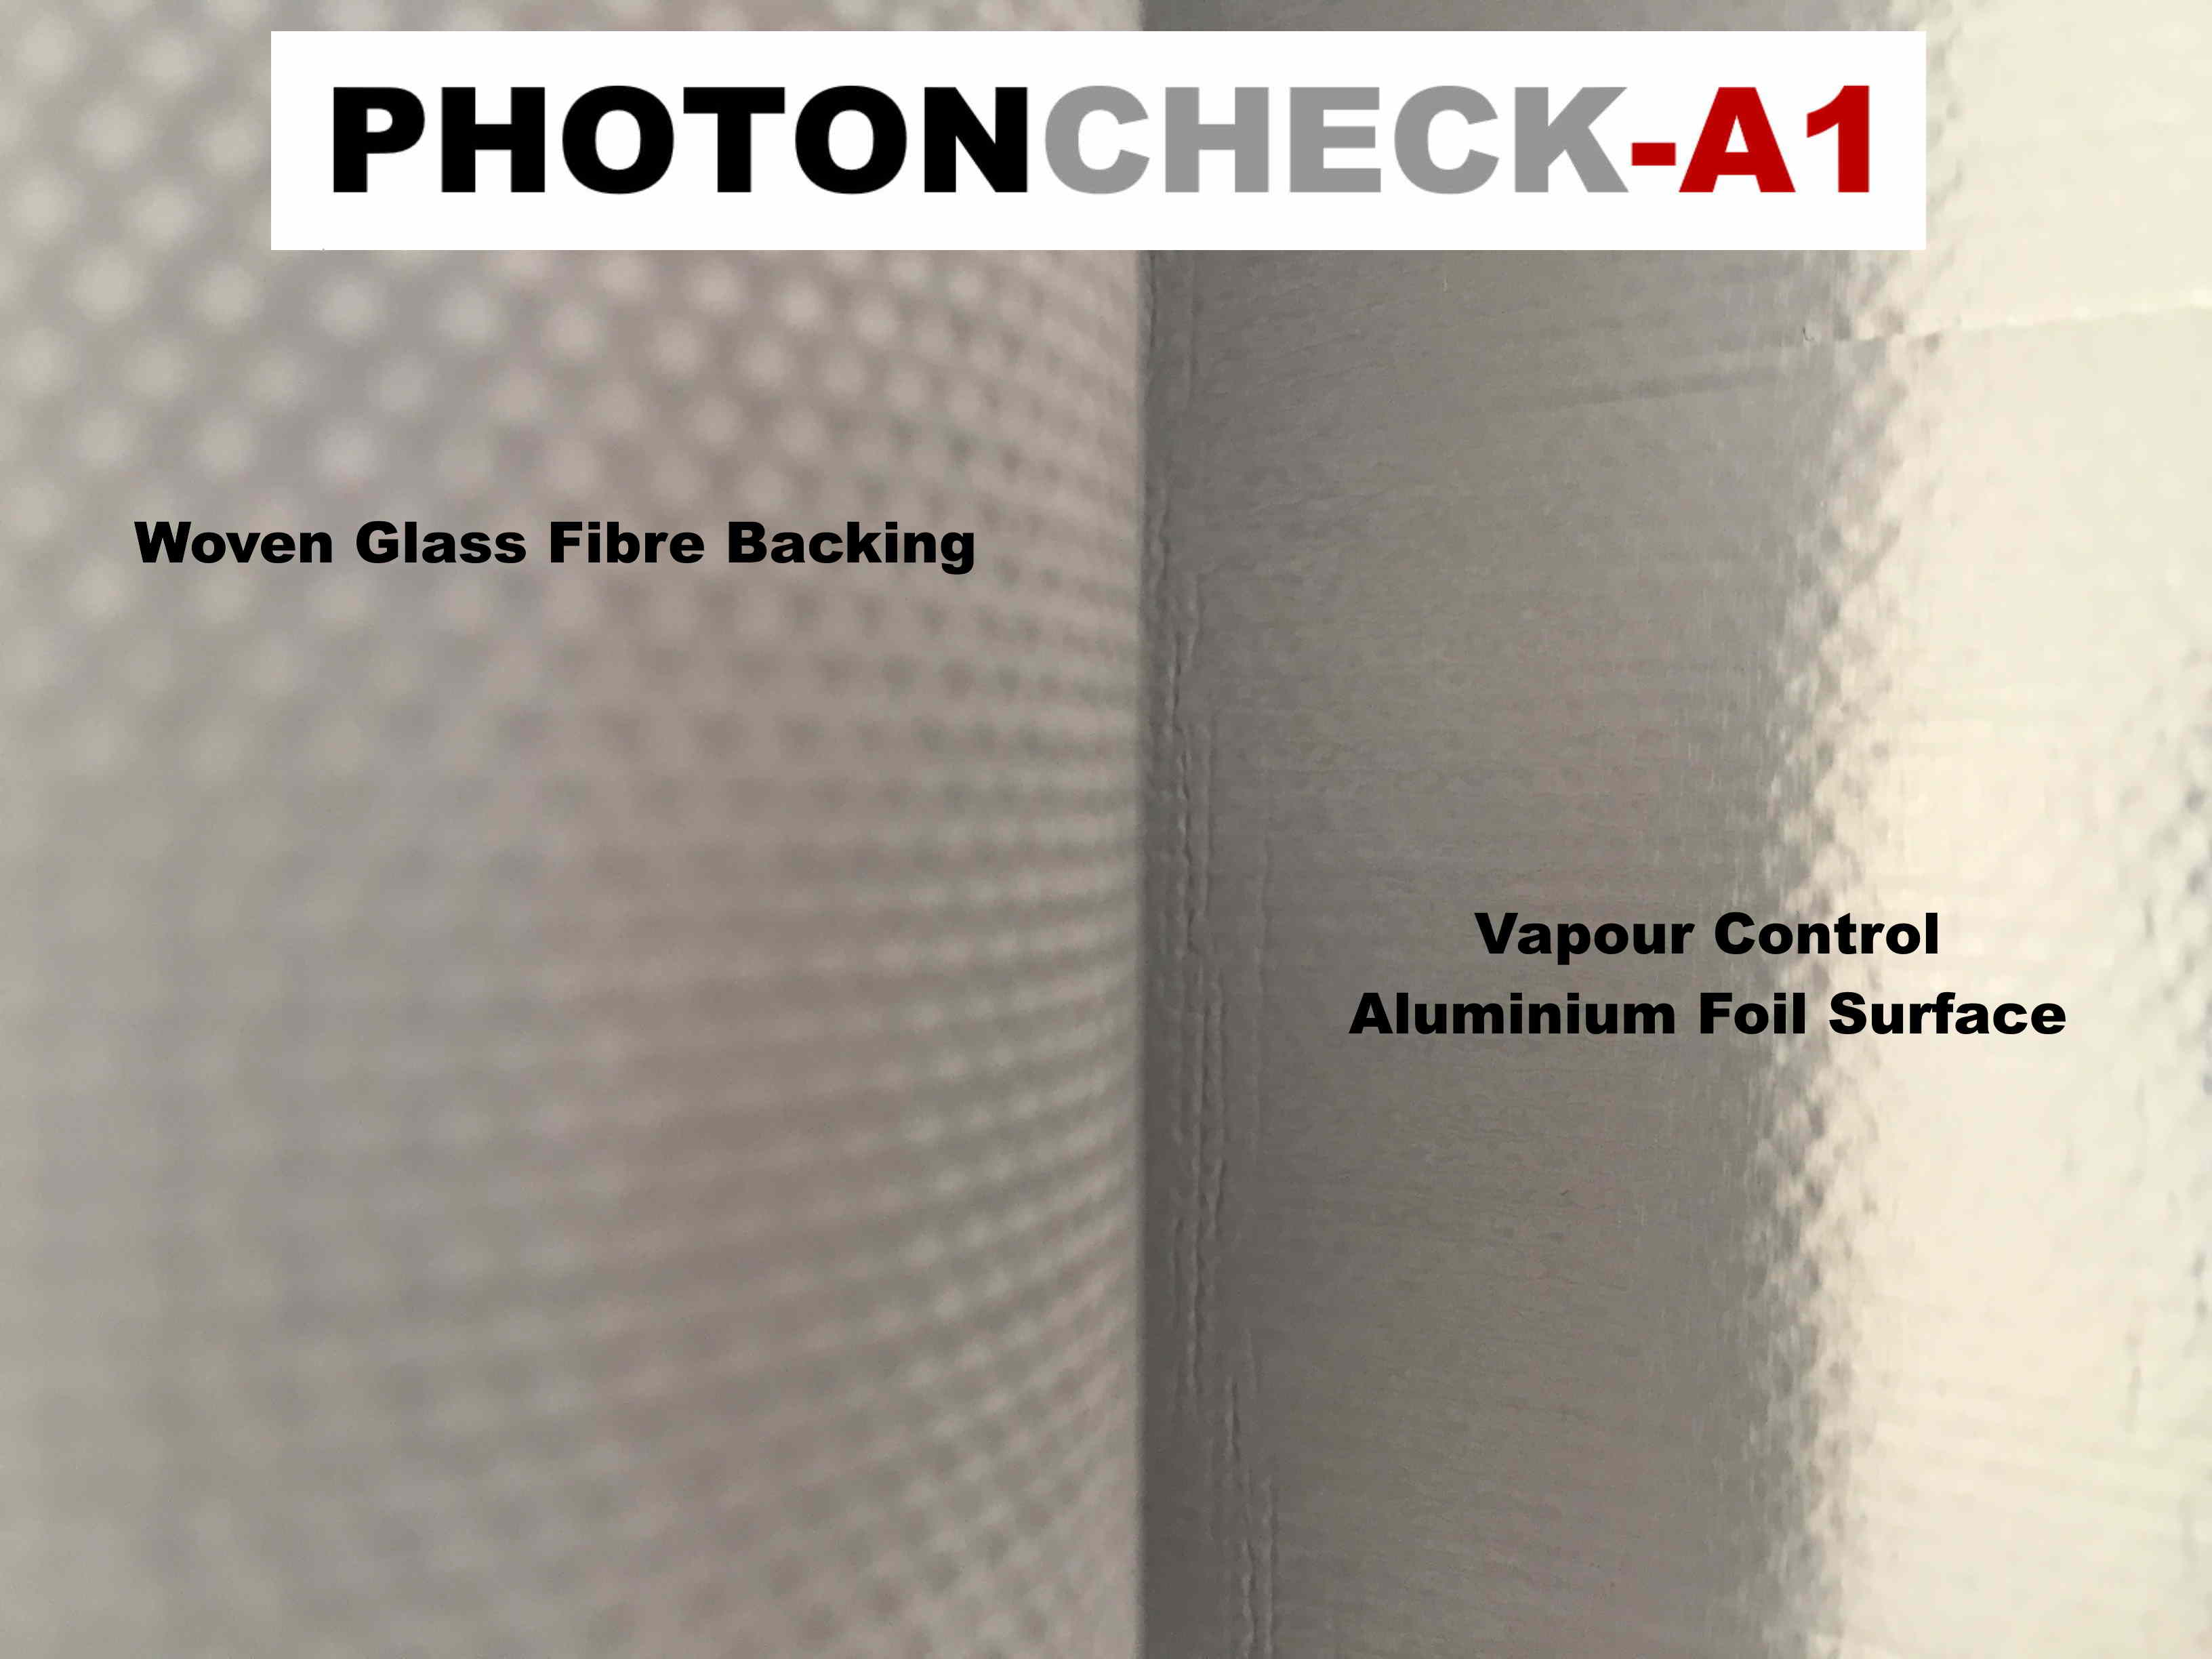 A1 PhotonCheck, Vapour control Reflective Insulation Membrane designed to boost the thermal performance of walls, ceilings, floors.